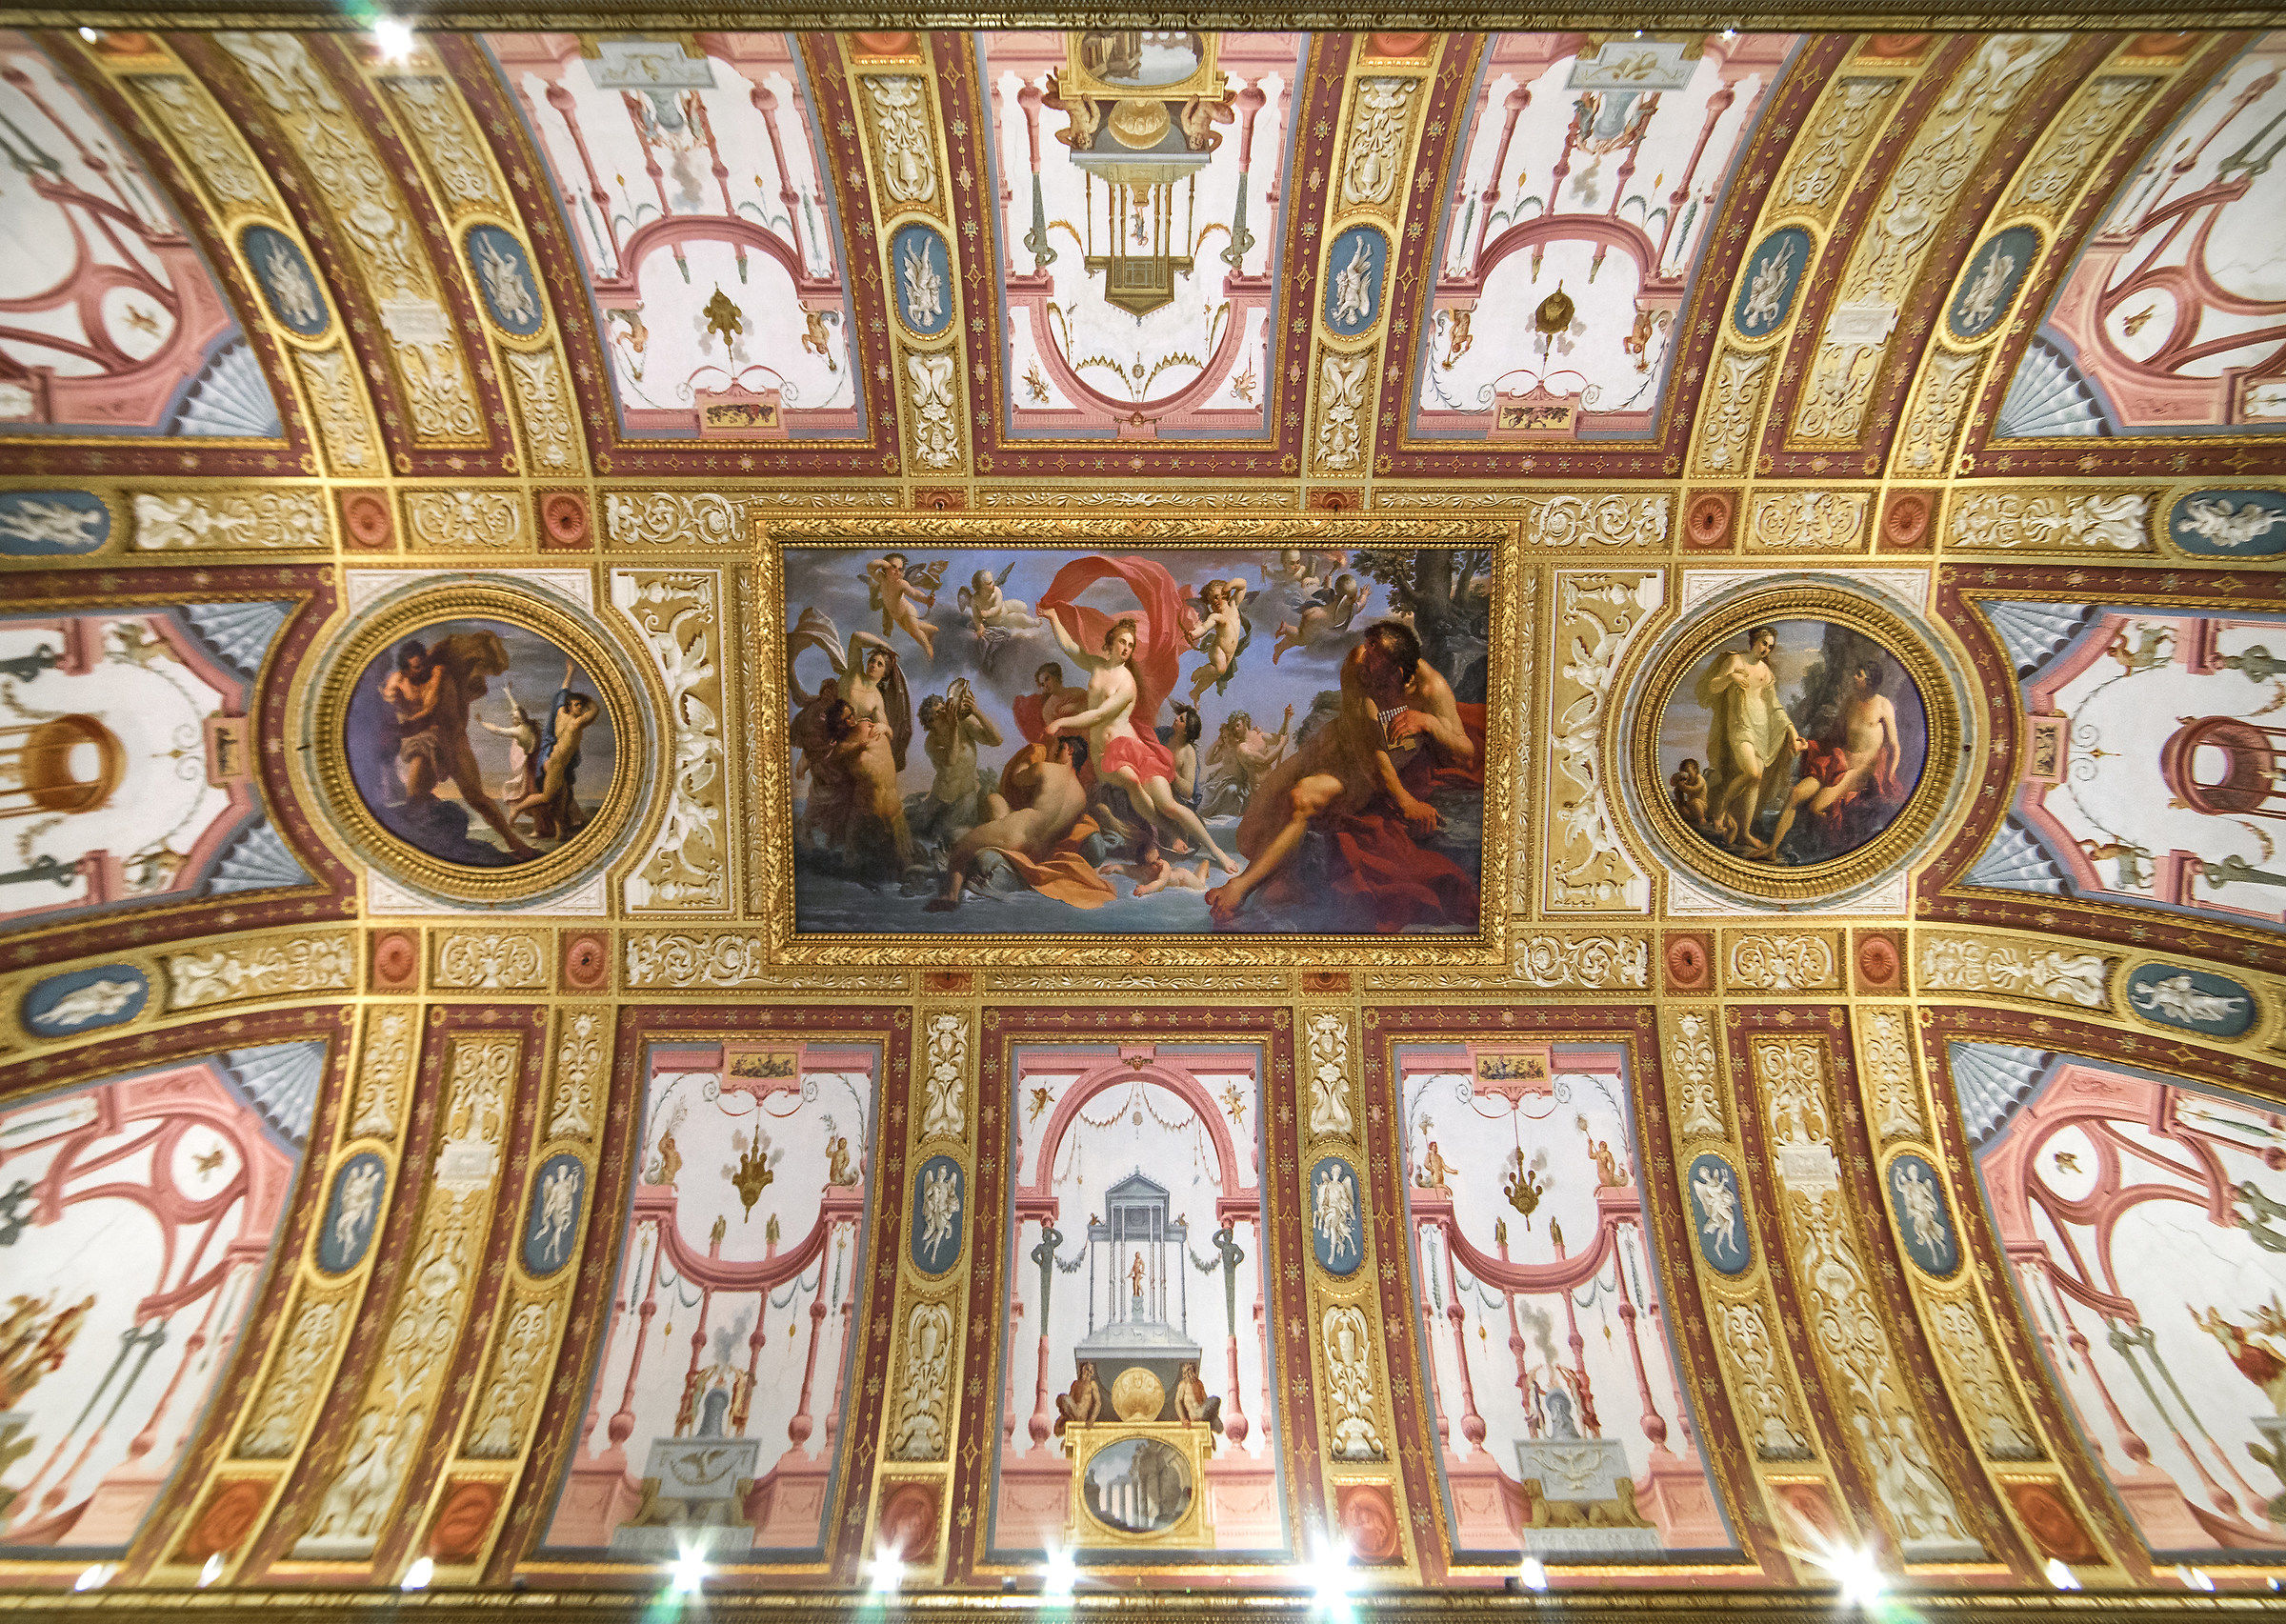 Ceiling of the Hall of Emperors...